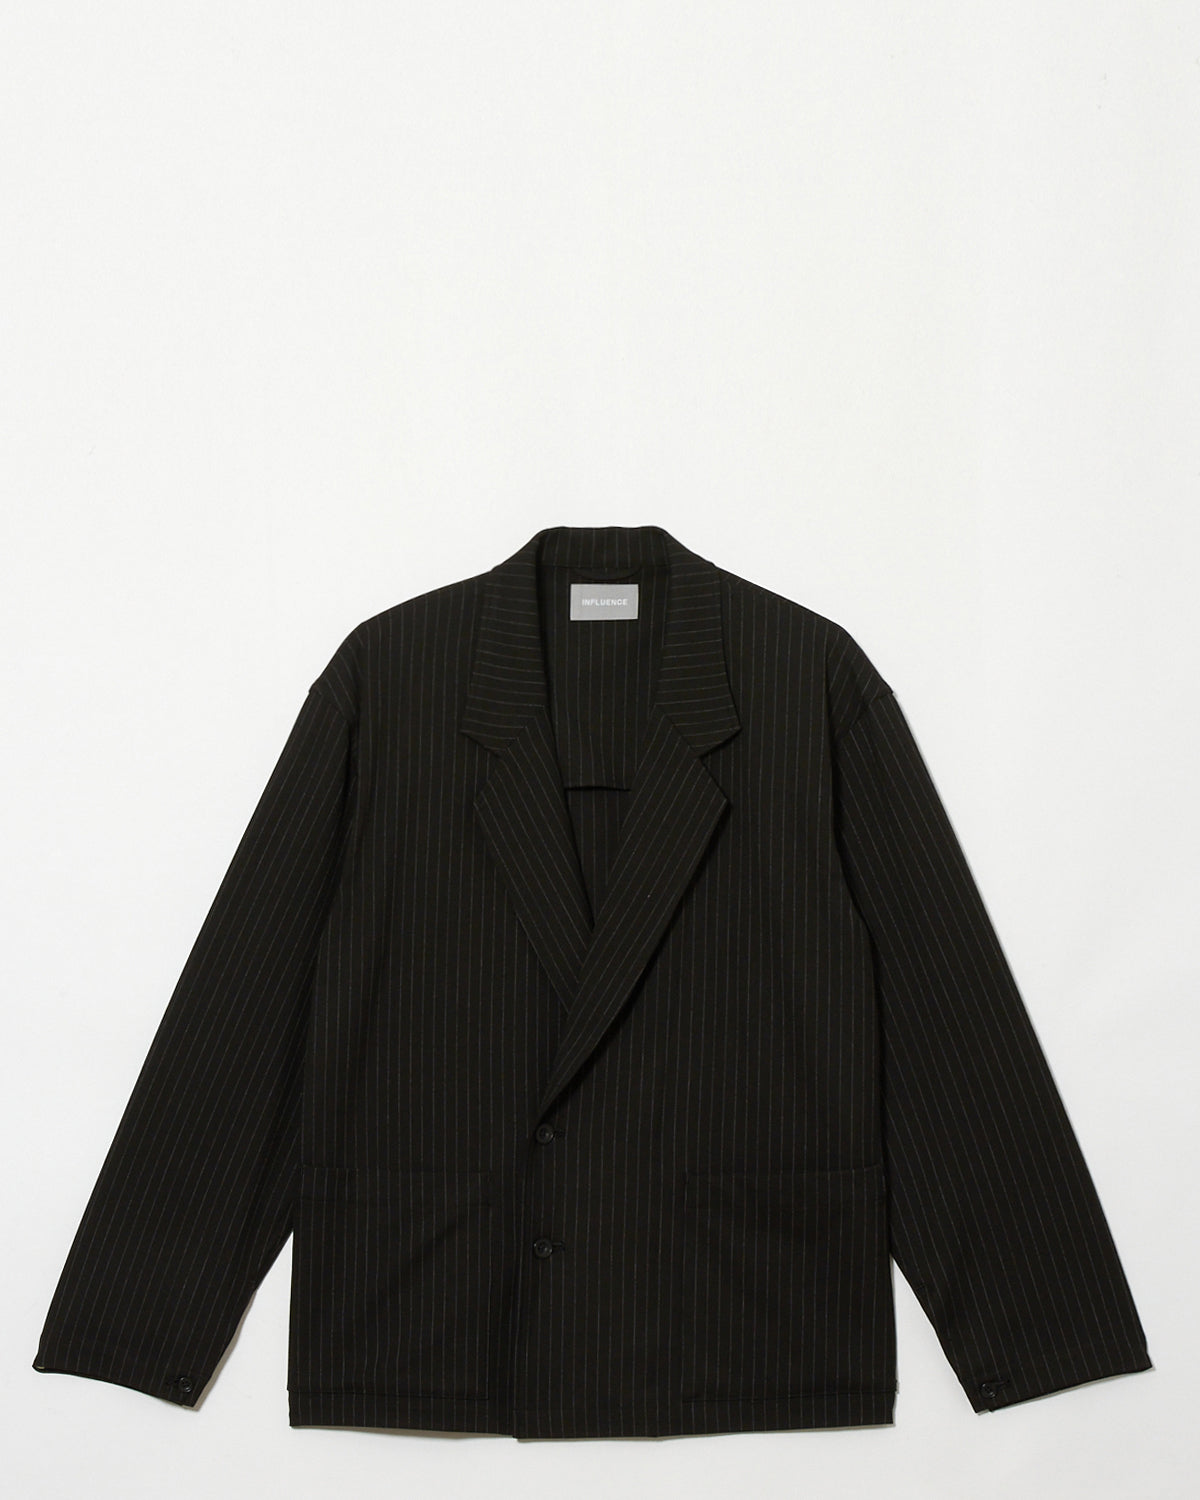 INFLUENCE / Stripe Double Jacket (black)